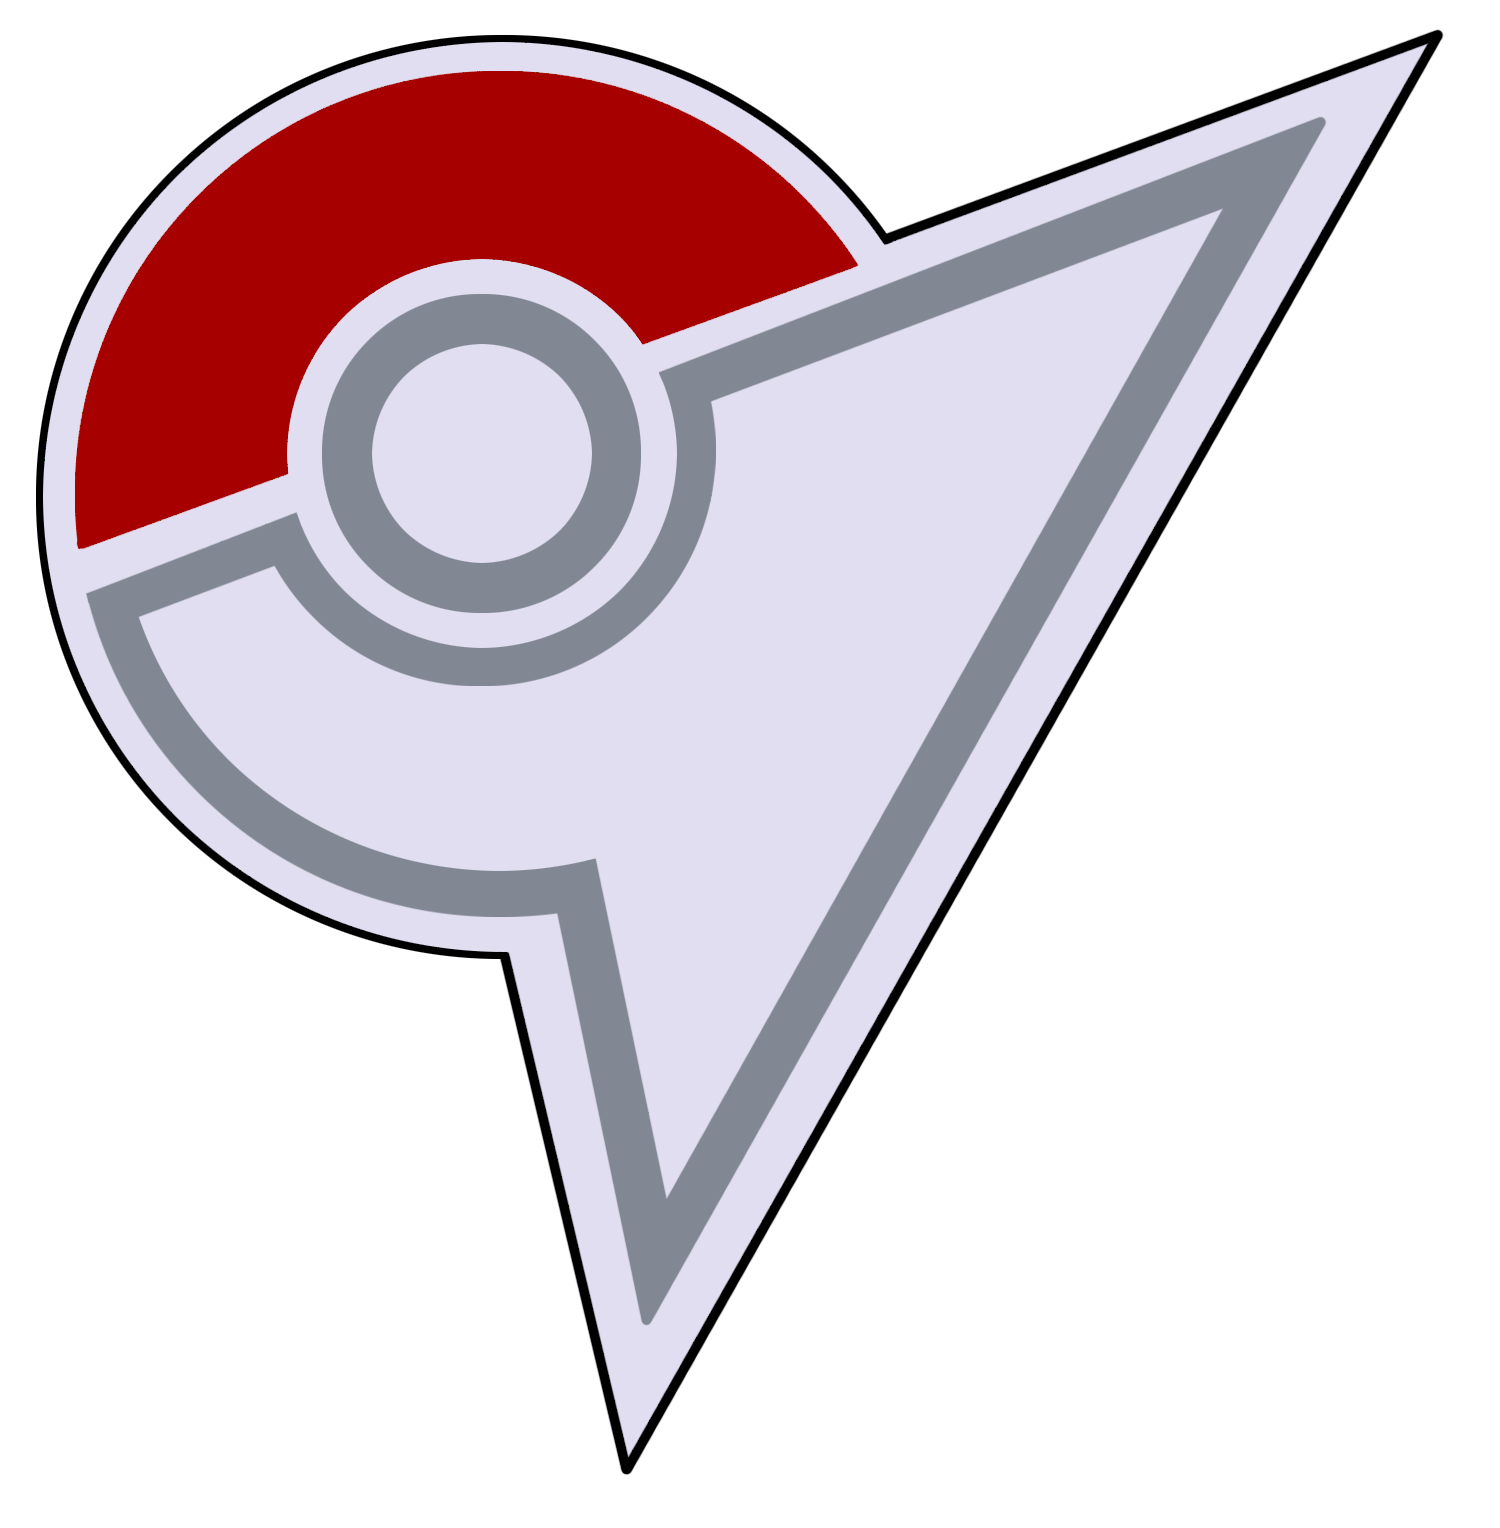 Pokemon Logos